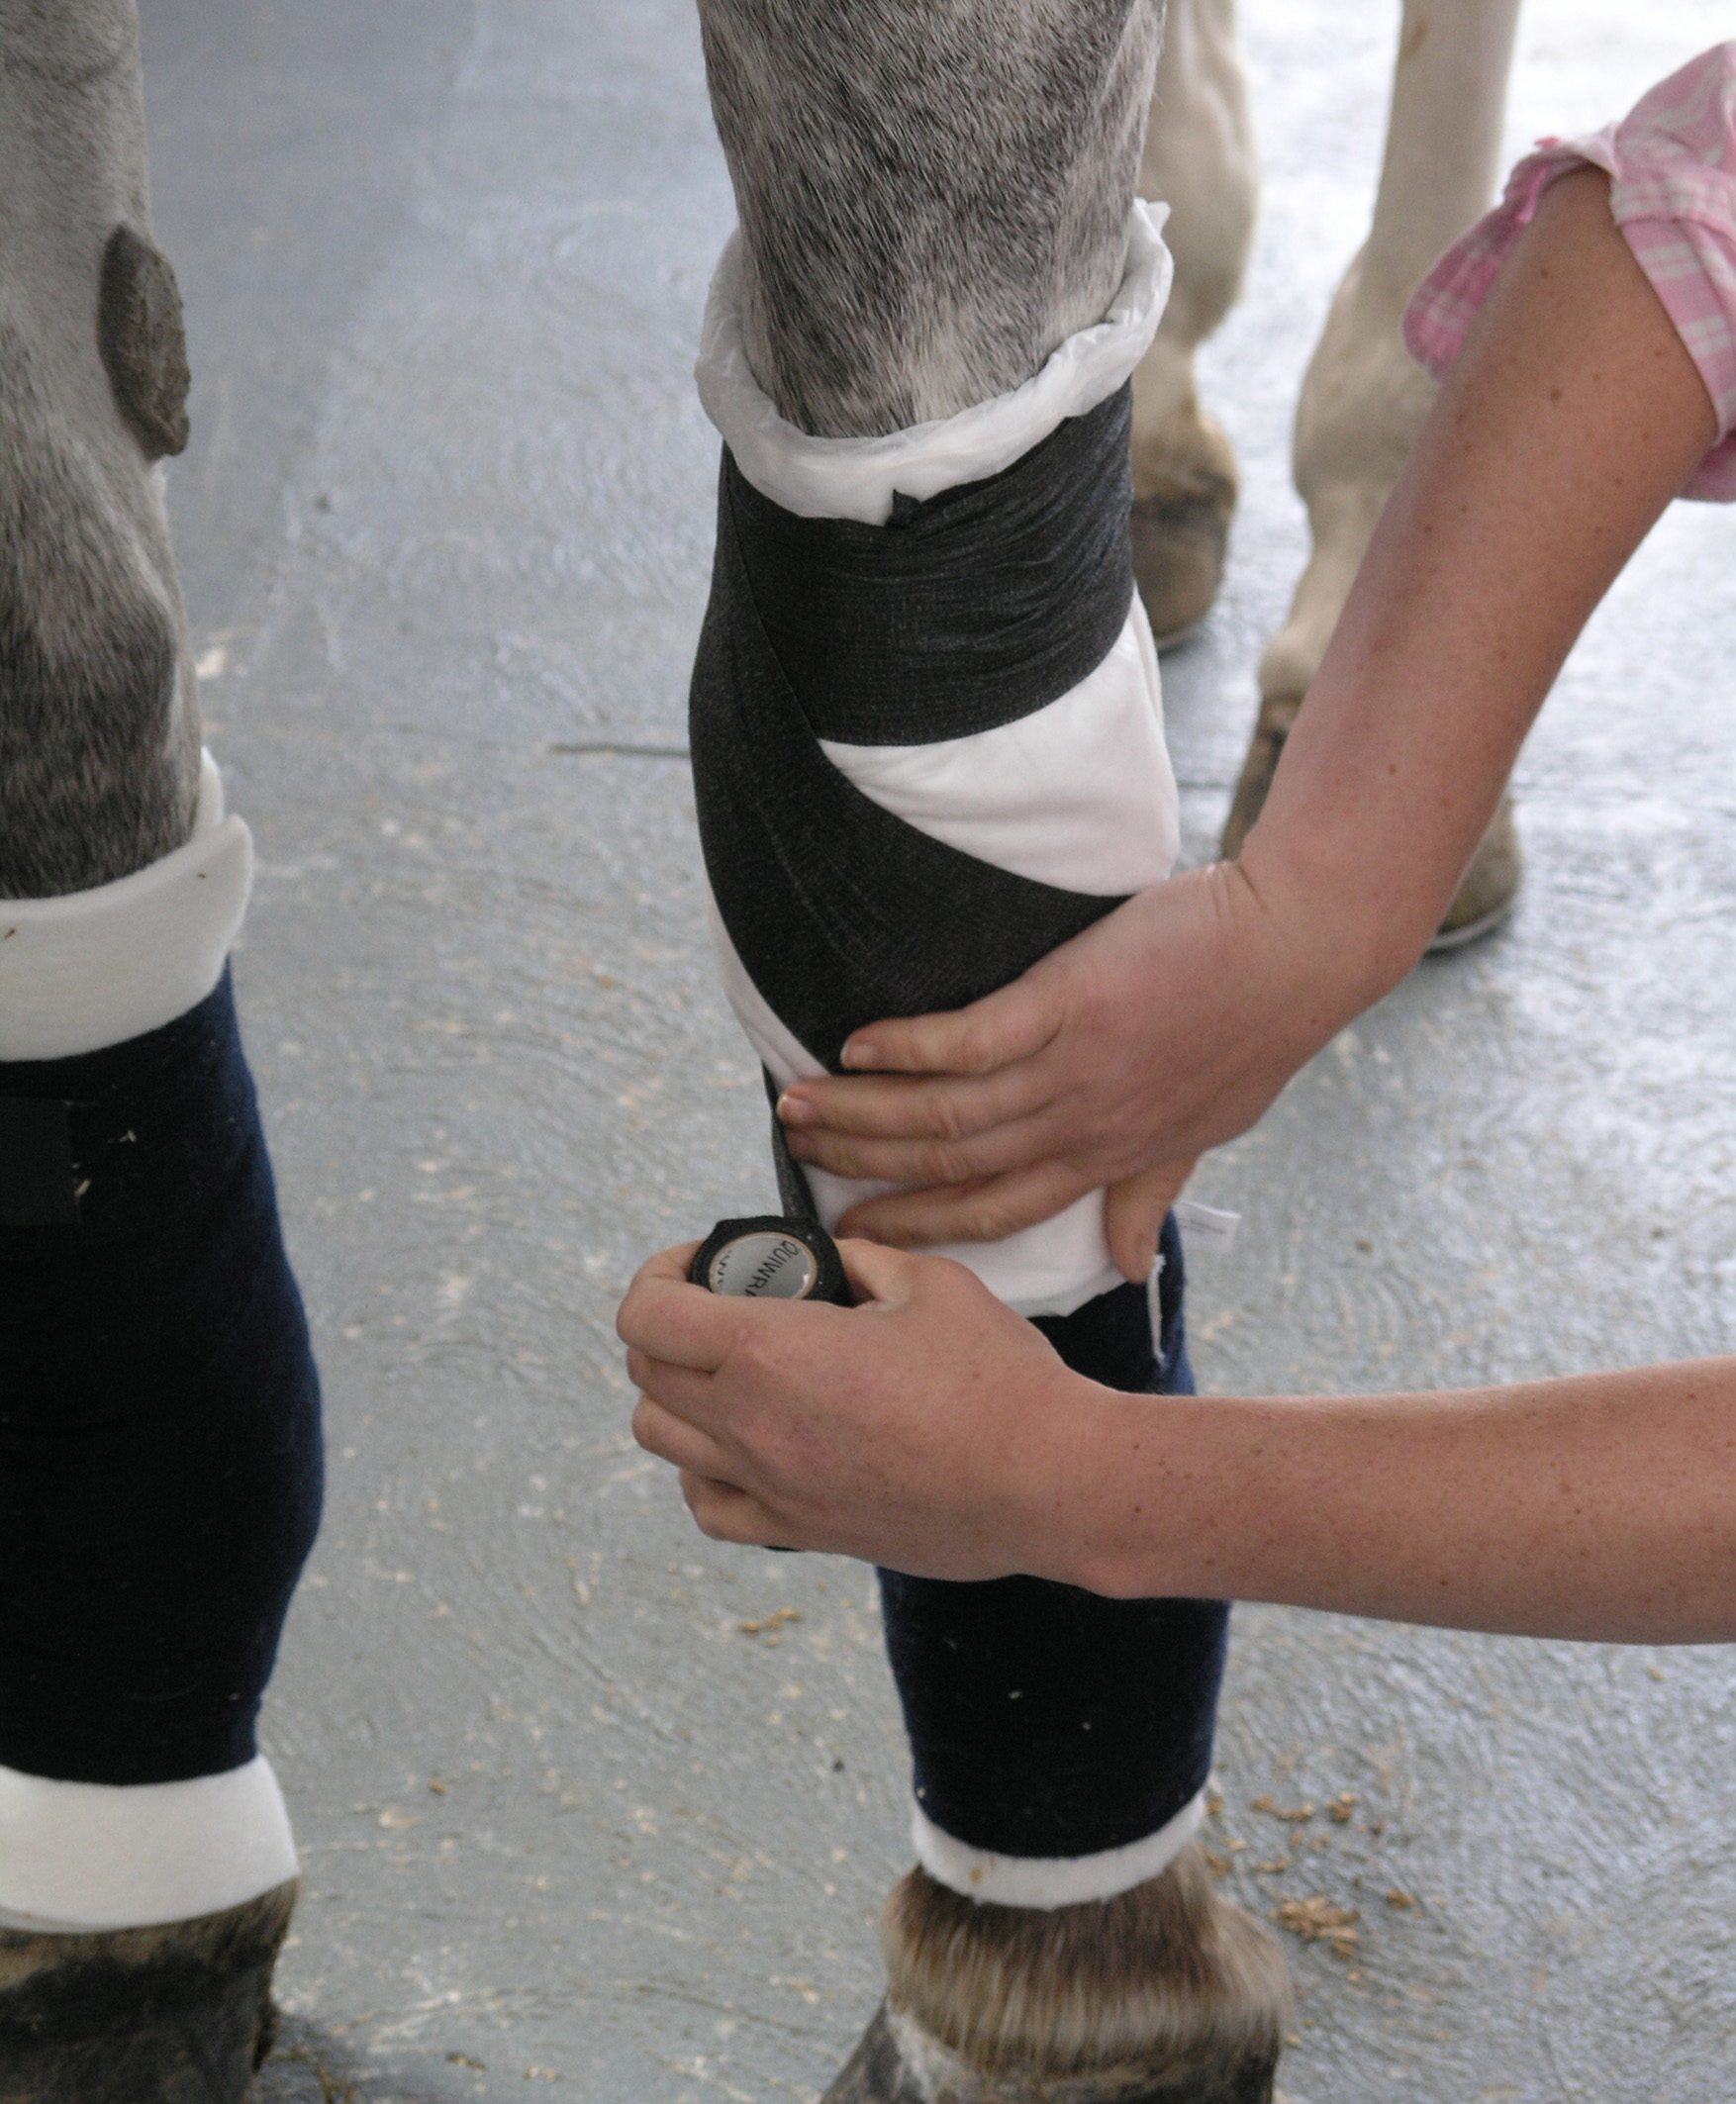 The knee is not an easy joint to bandage and any bandage should not restrict movement